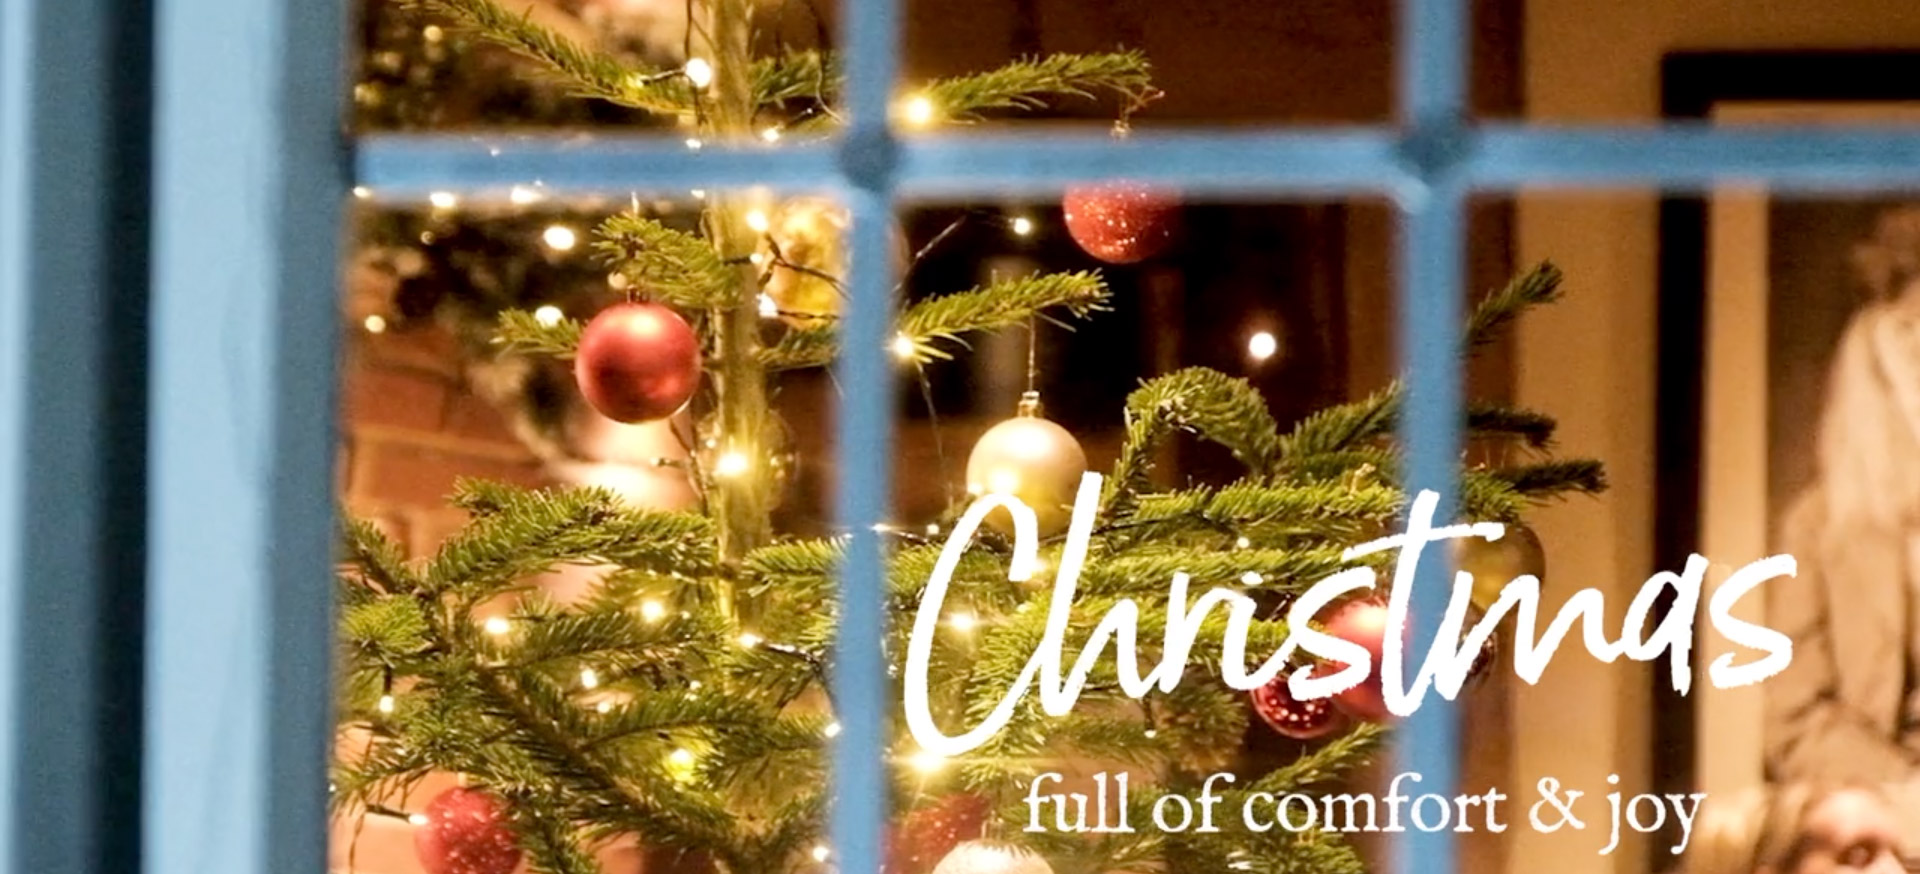 Get together this Christmas at Vintage Inns